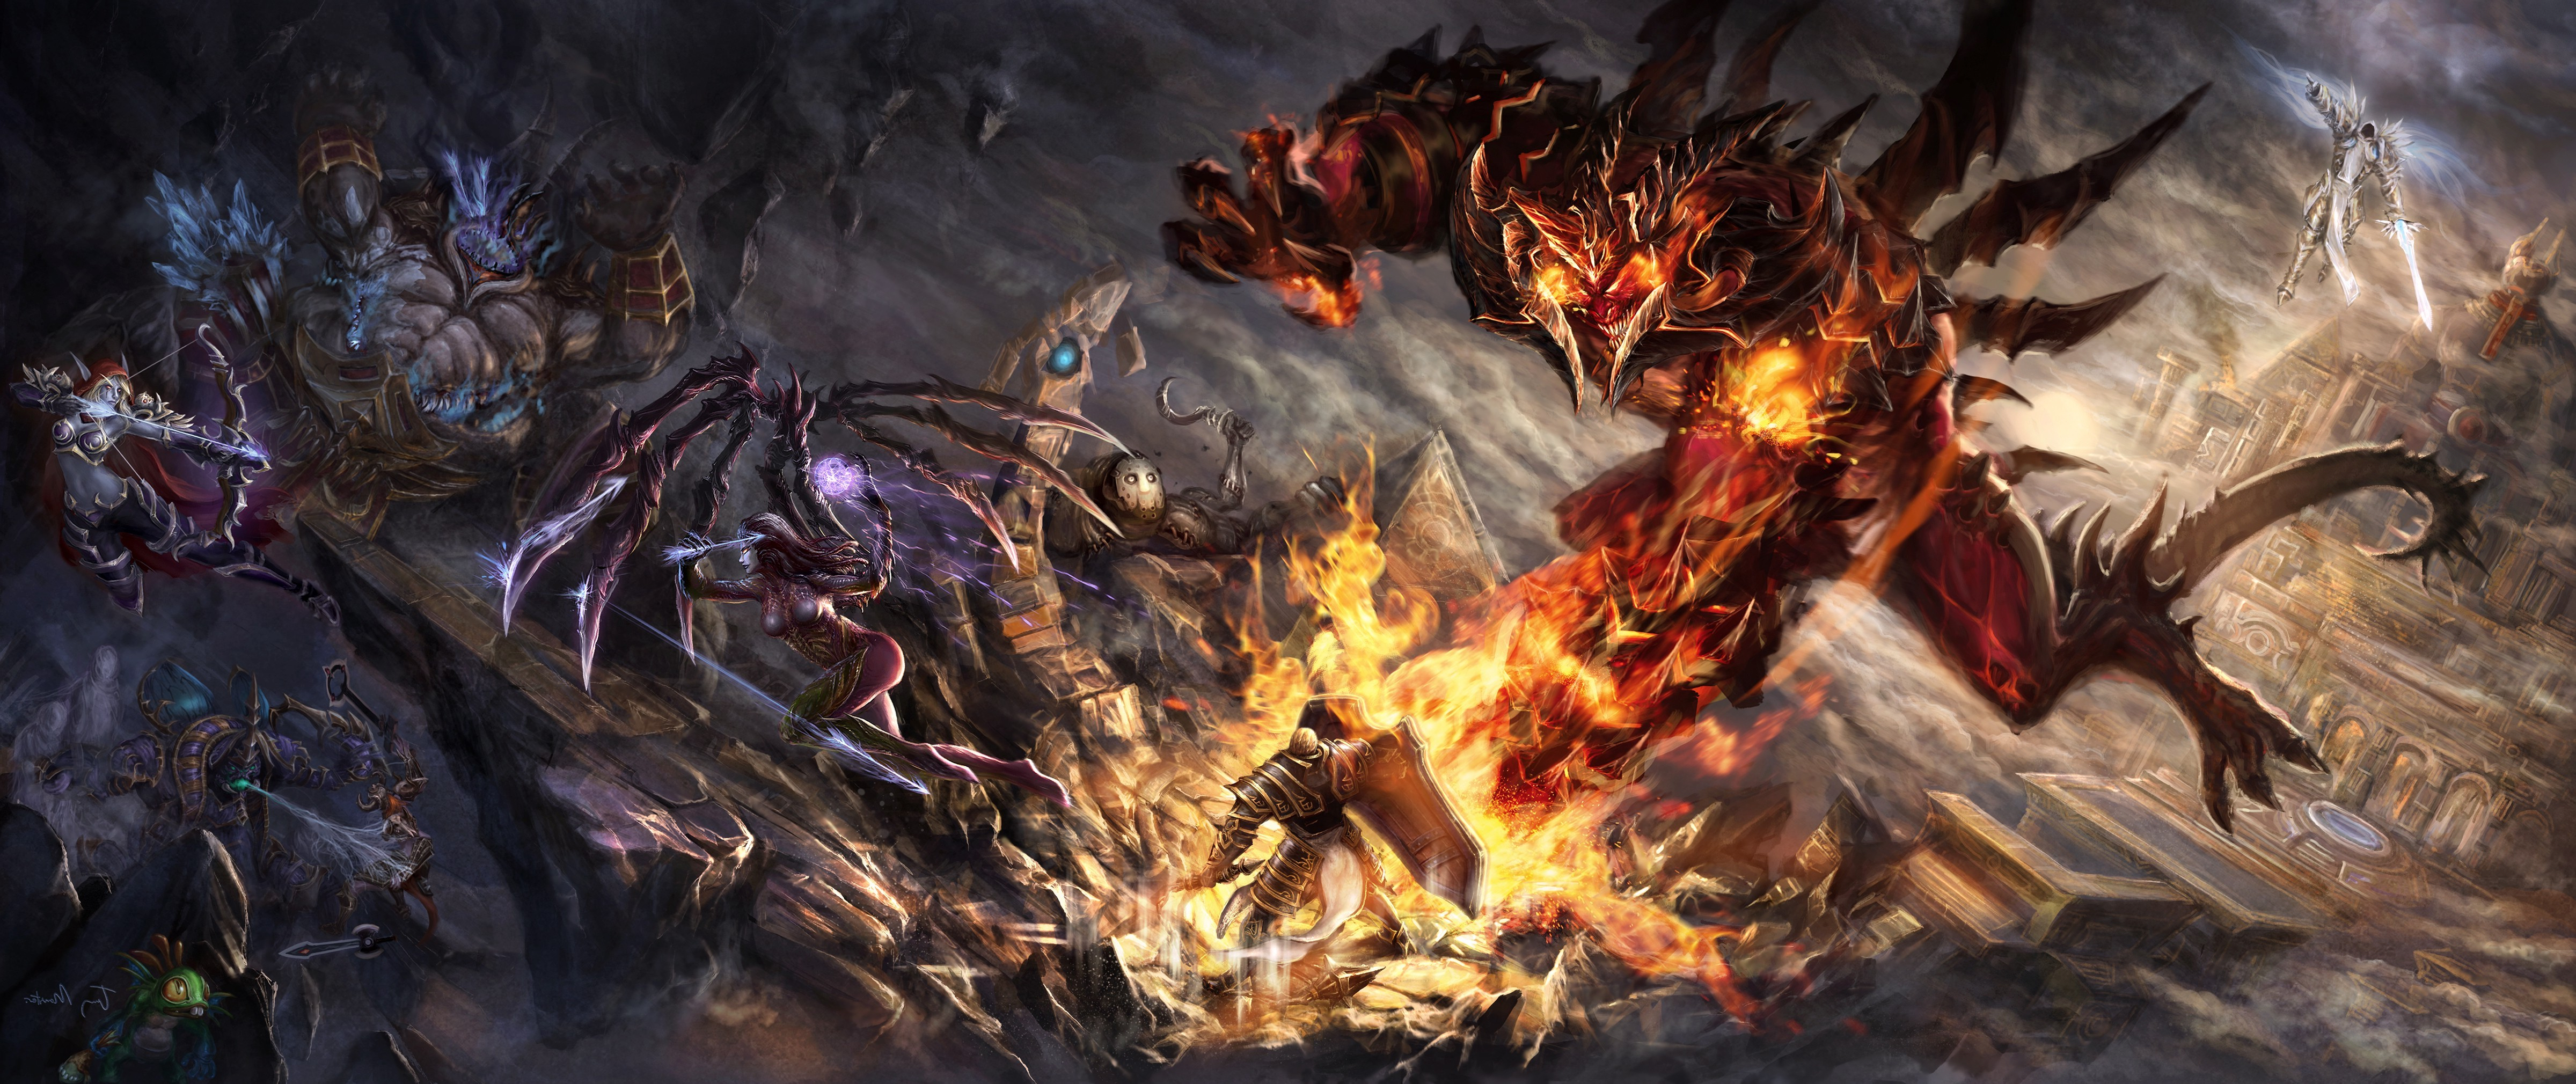 Heroes Evolved Hd Wallpaper Heroes Of The Storm Contests Blizzard Entertainment